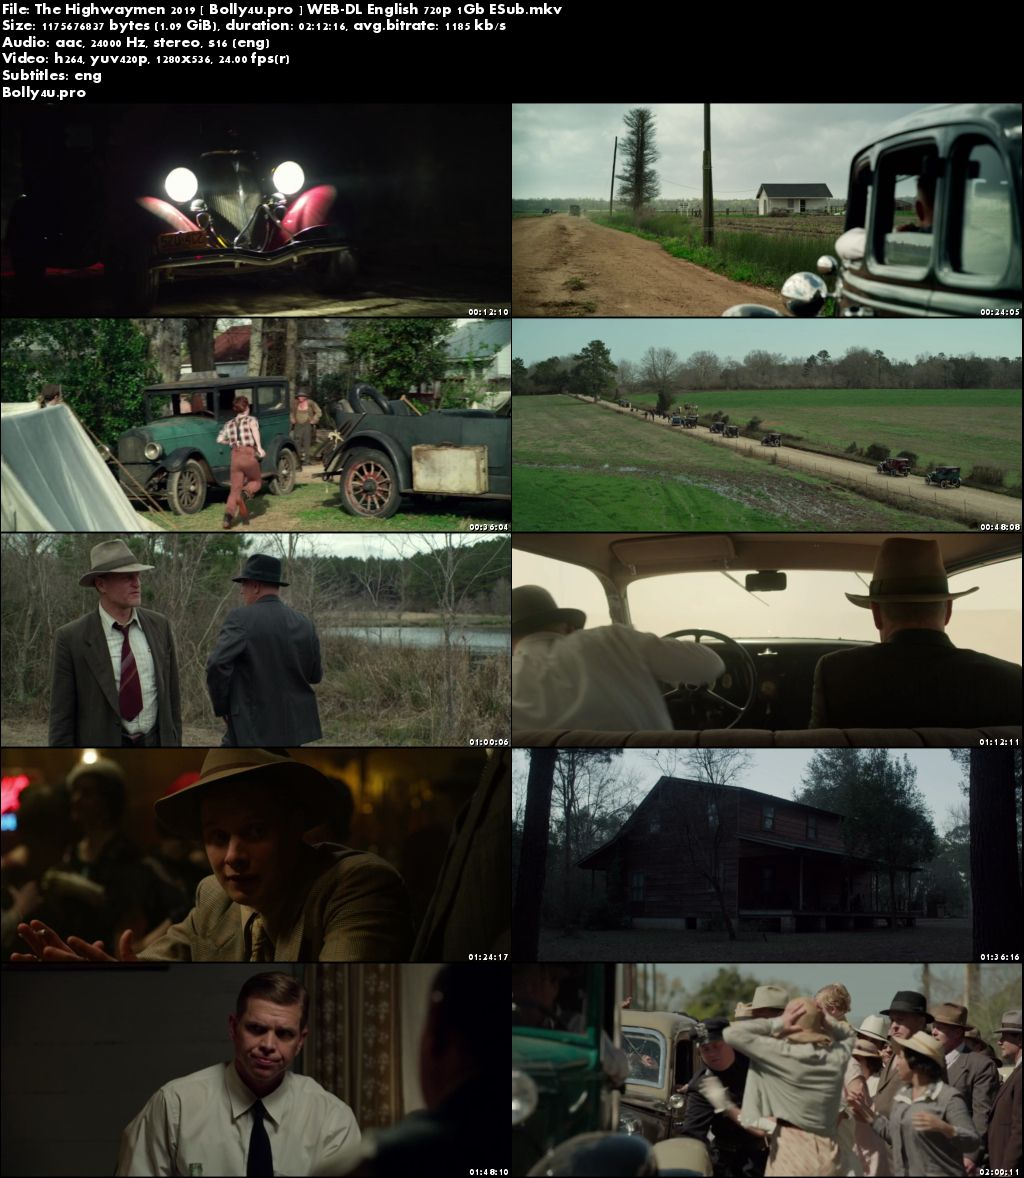 The Highwaymen 2019 WEB-DL 1GB English 720p ESub Download